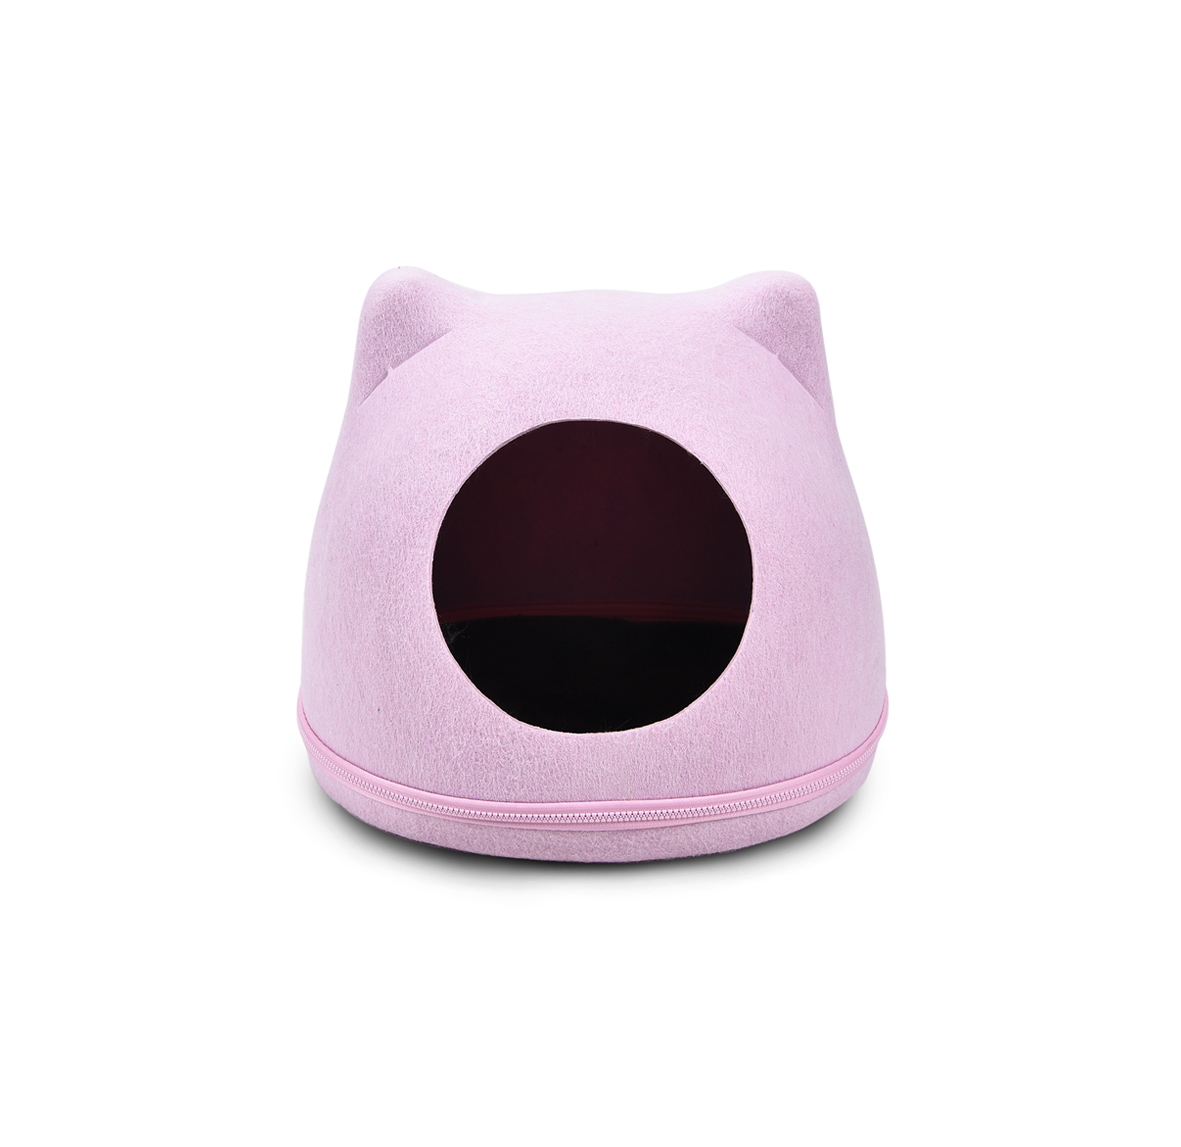 Low moq princess pink cat shaped cat bed wool felt